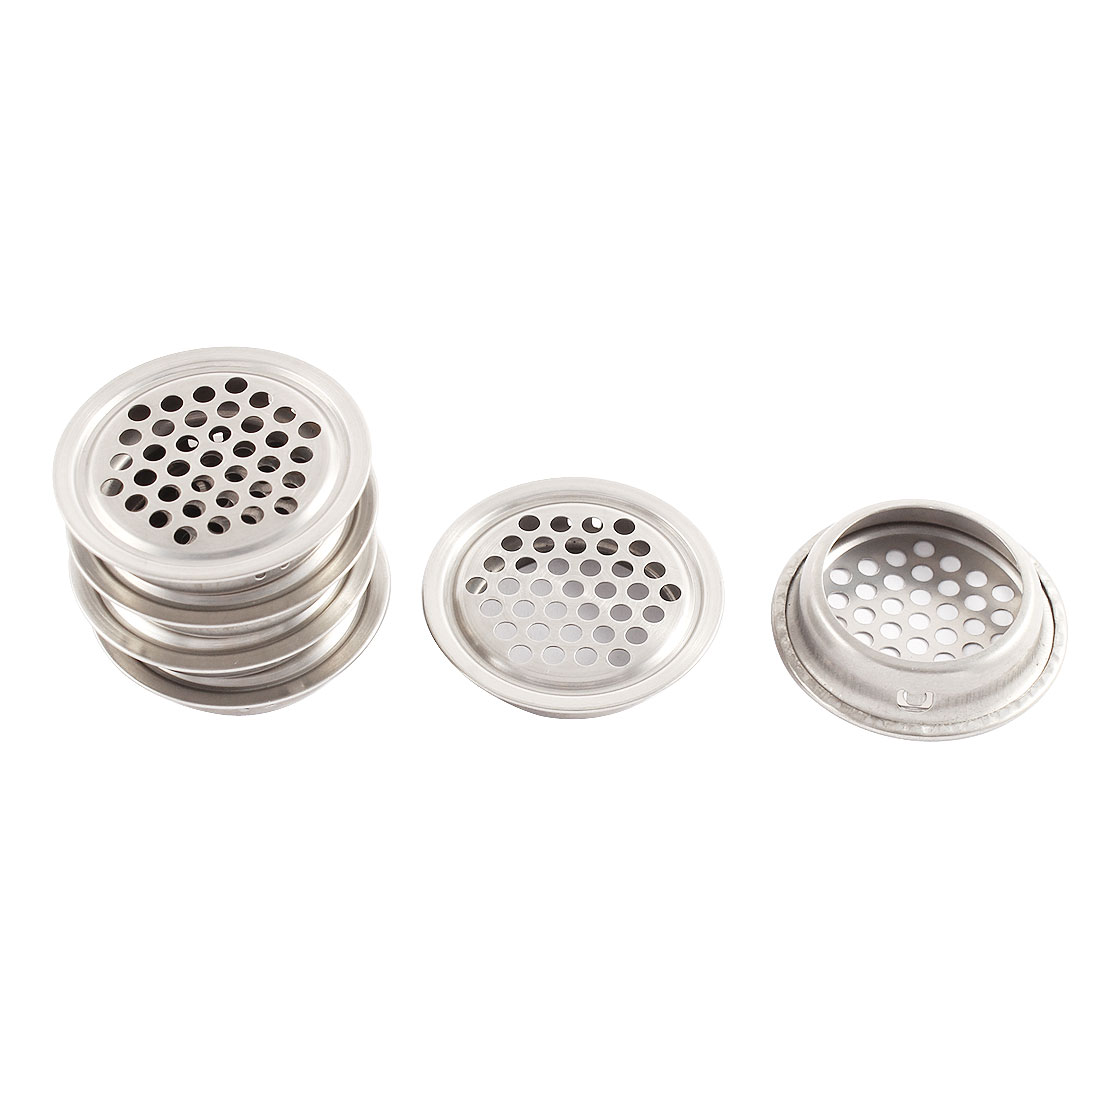 Metal 3.4cm Bottom Dia Perforated Round Mesh Air Vents Ventilation Louvers 6 Pcs